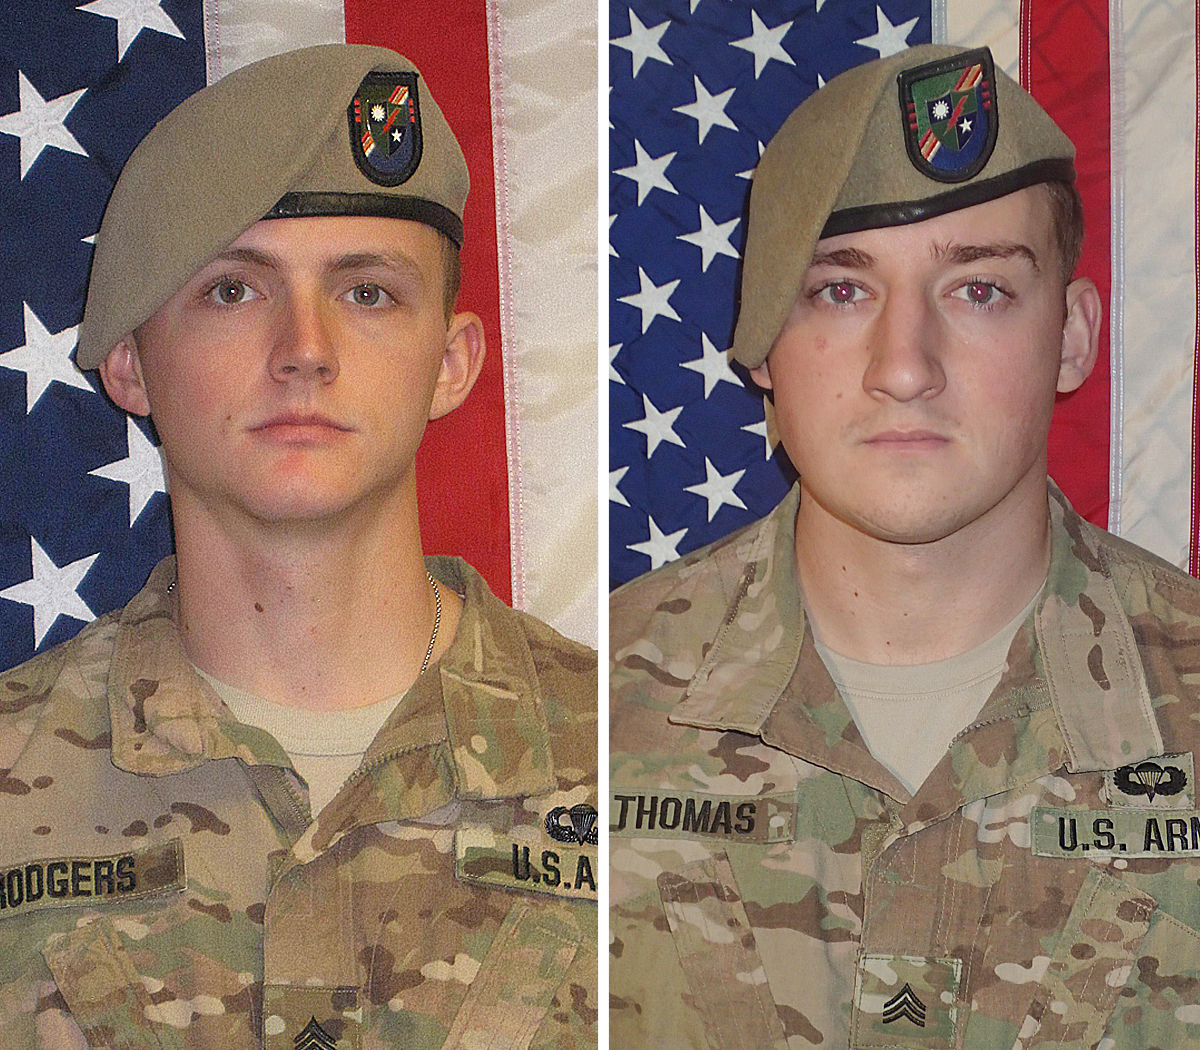 Pentagon: Friendly Fire May Have Led to Army Ranger Deaths